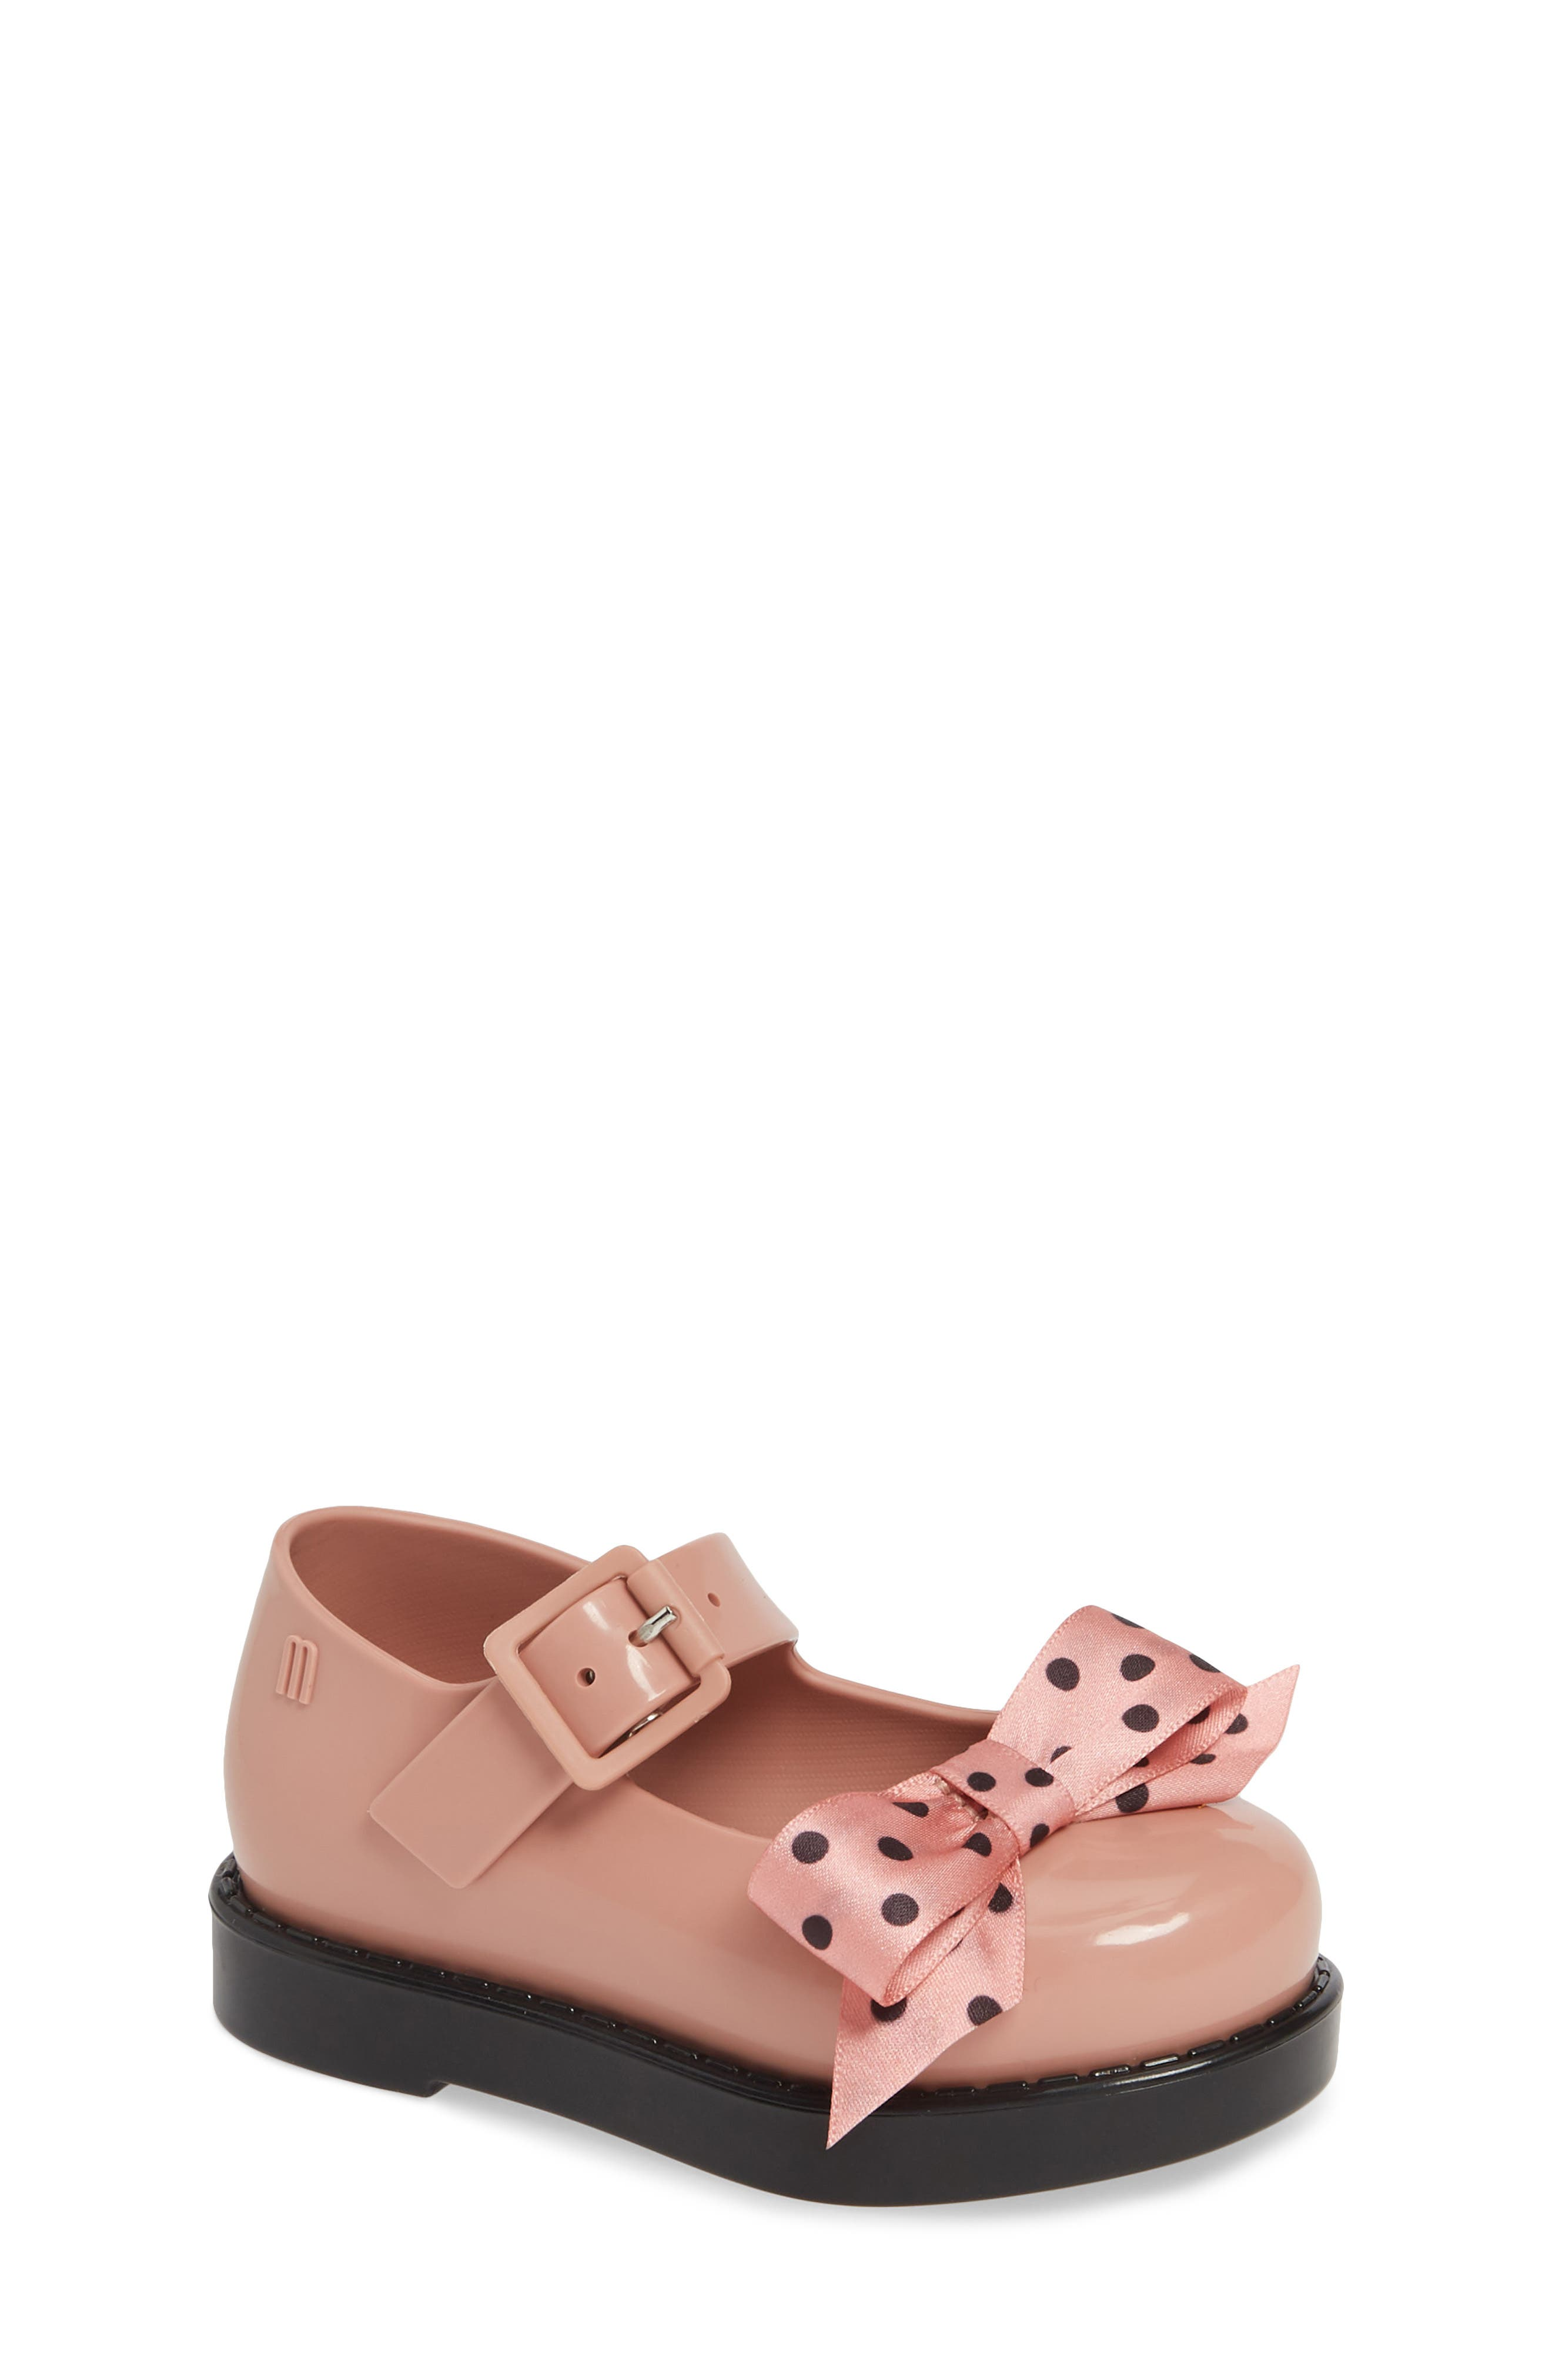 Maggie Mary Jane Flat,                             Main thumbnail 1, color,                             PINK BLACK